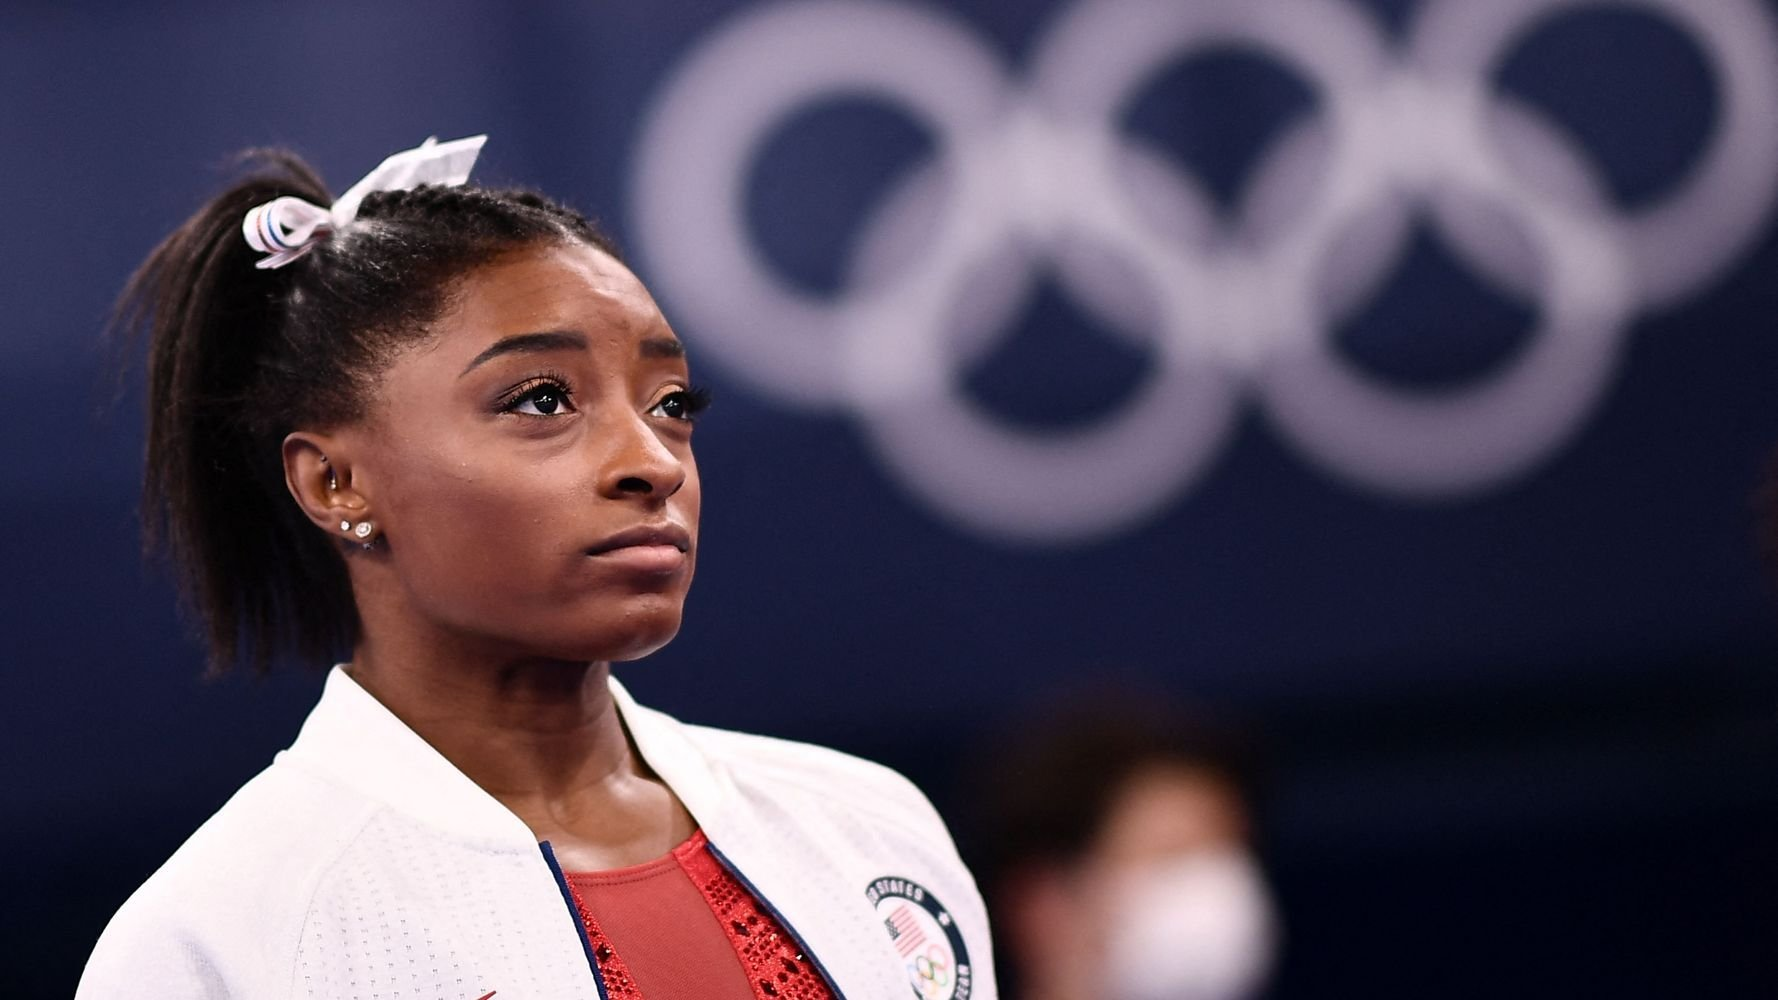 Simone Biles Cites Mental Health Concerns for Pulling Out of Competition